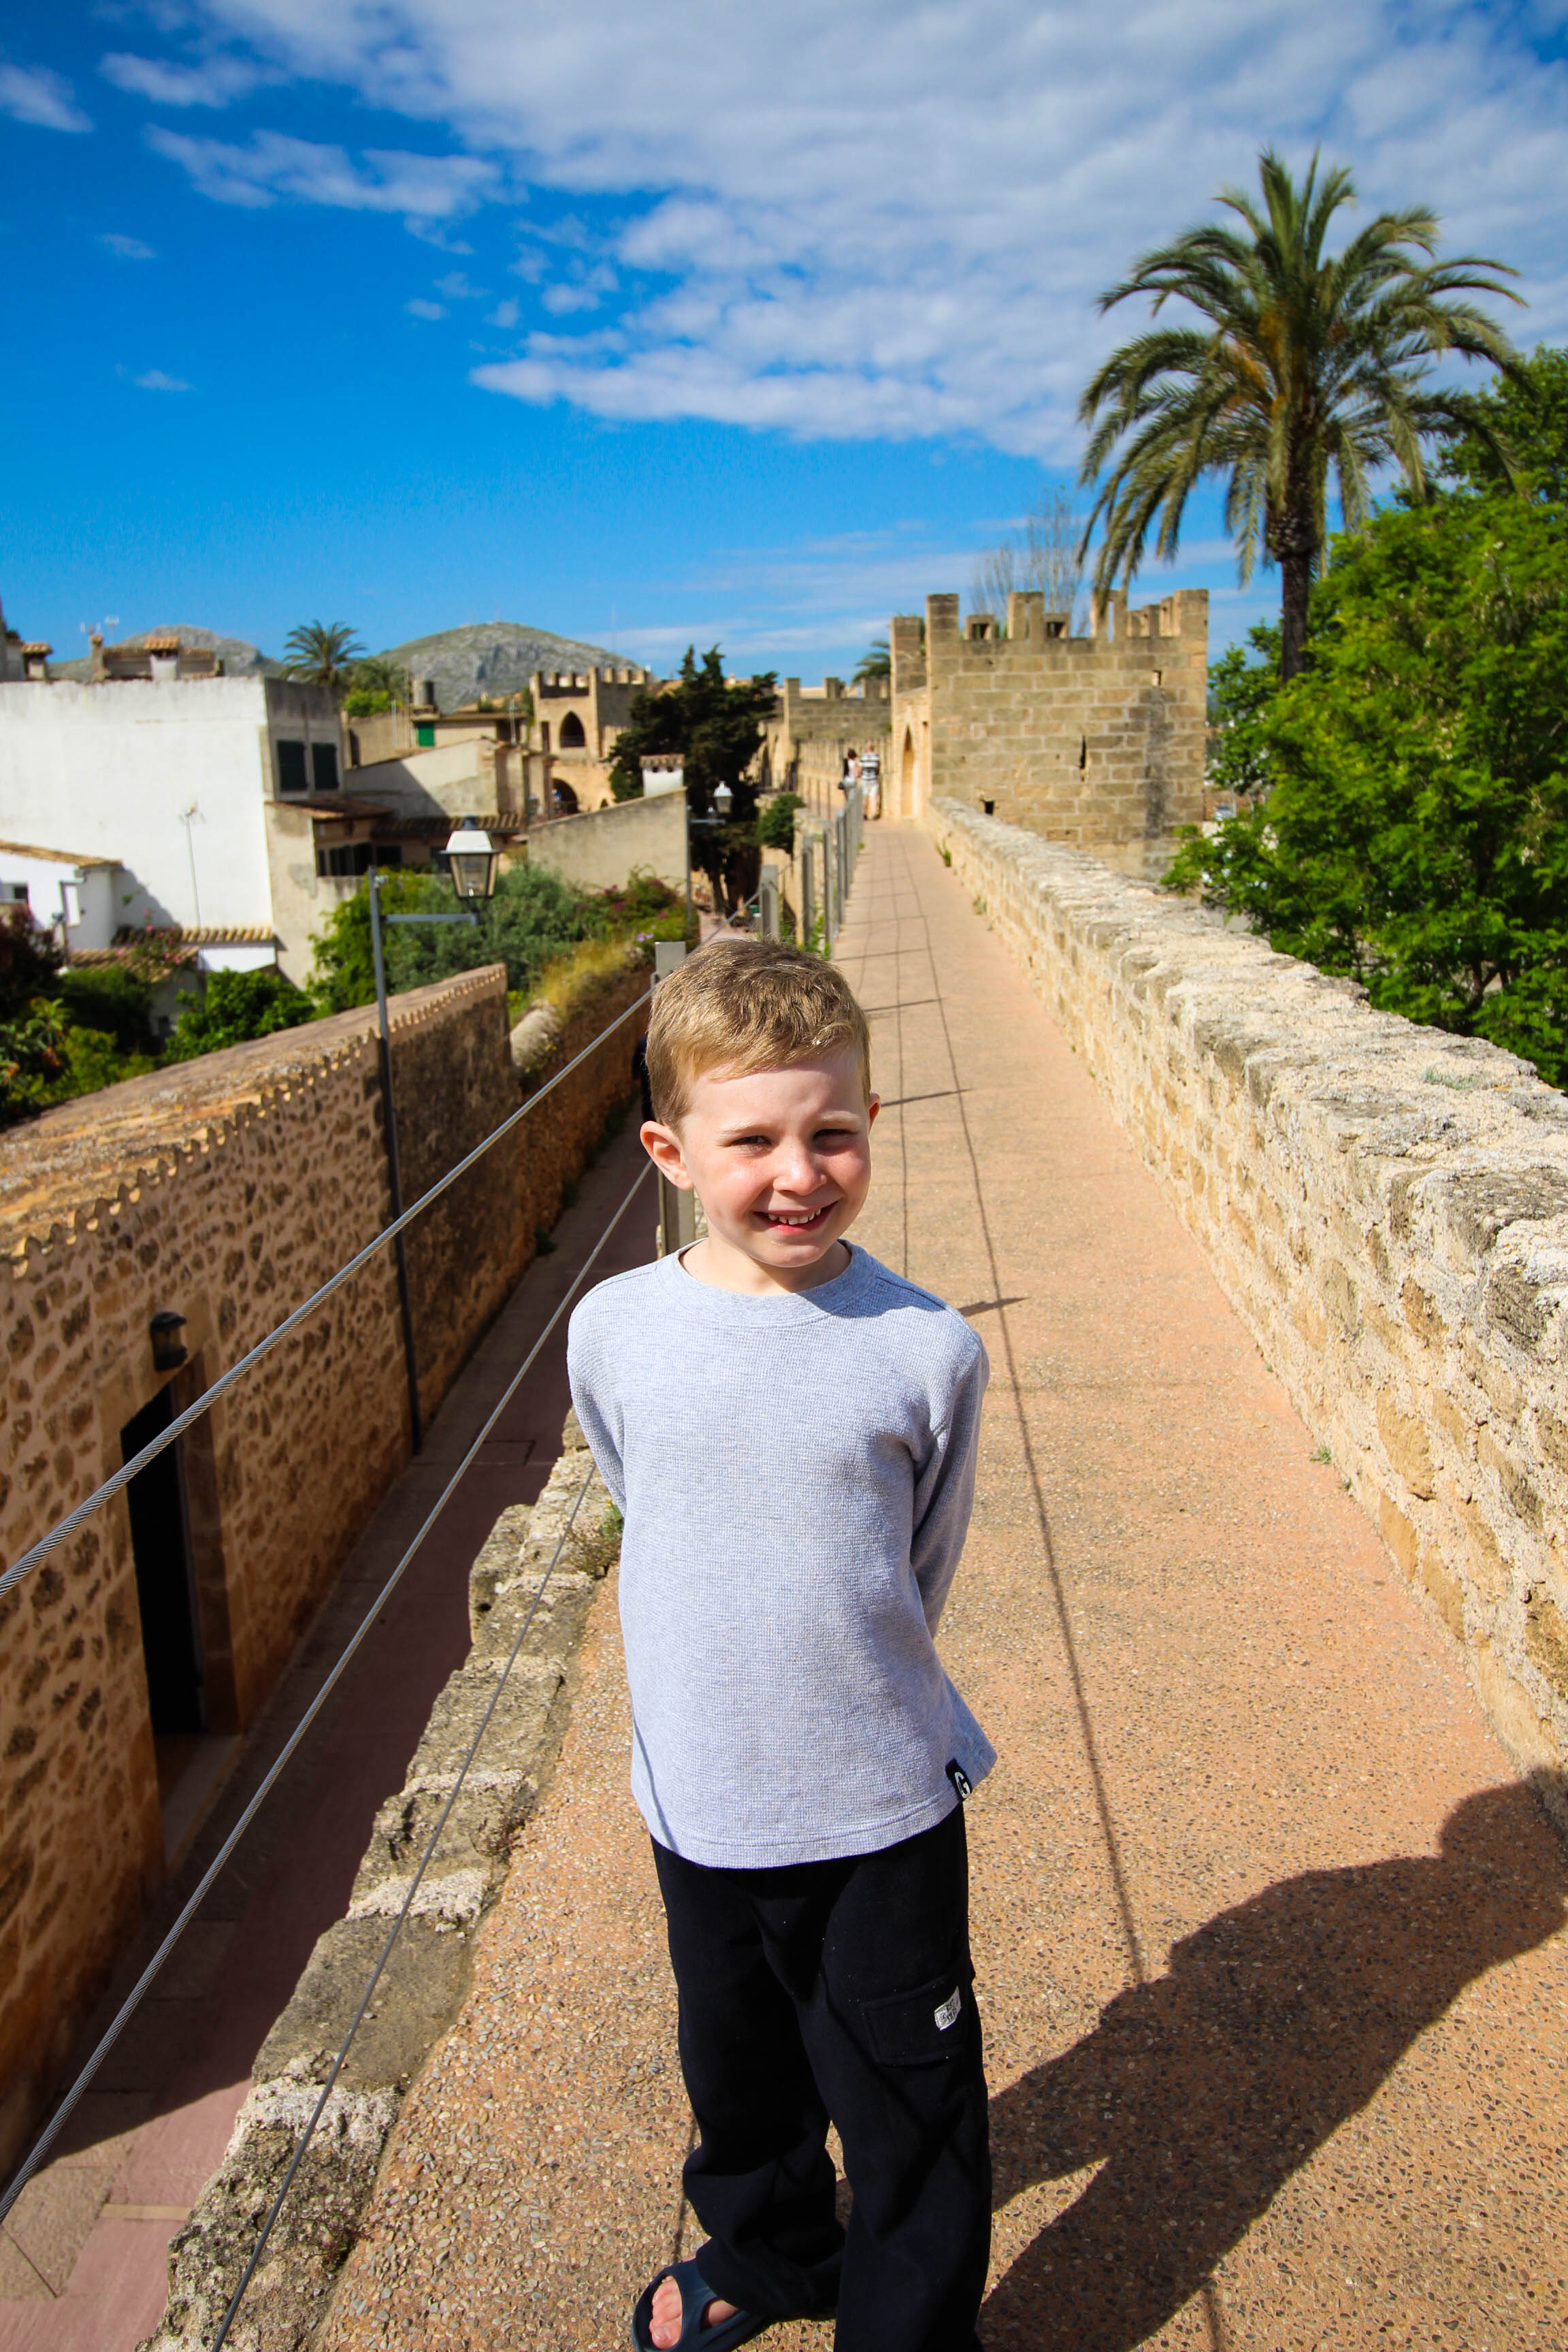 Exploring the ancient walls of Old Town Alcudia - a great non-beach day activity!